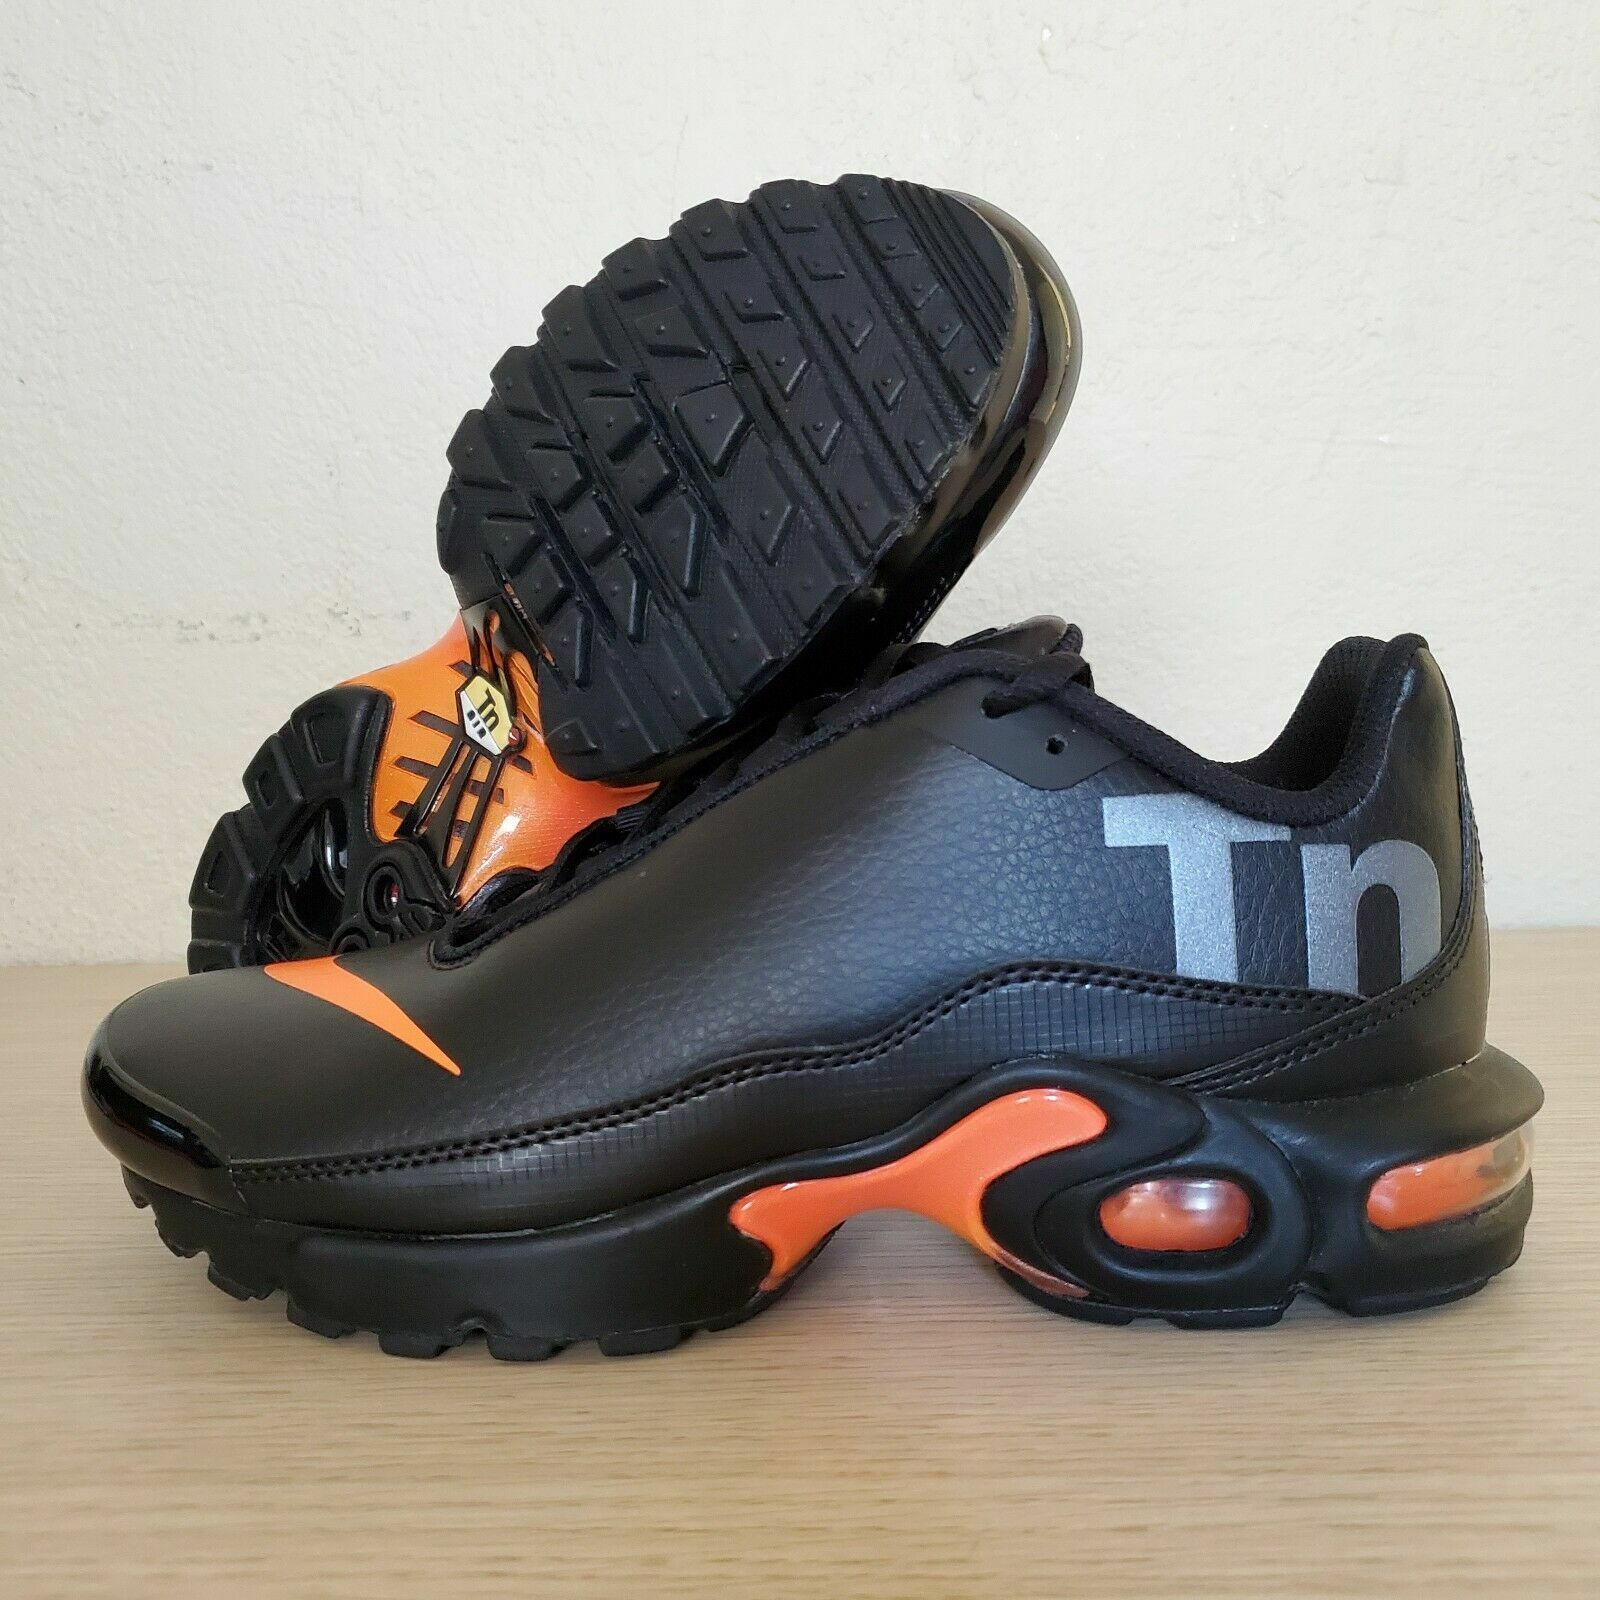 pretty nice f4e71 ea2b1 Details about Nike Air Max Plus TN (GS) SE BG Mercurial Black Orange  AR0005-001 Sz 6Y / 7W